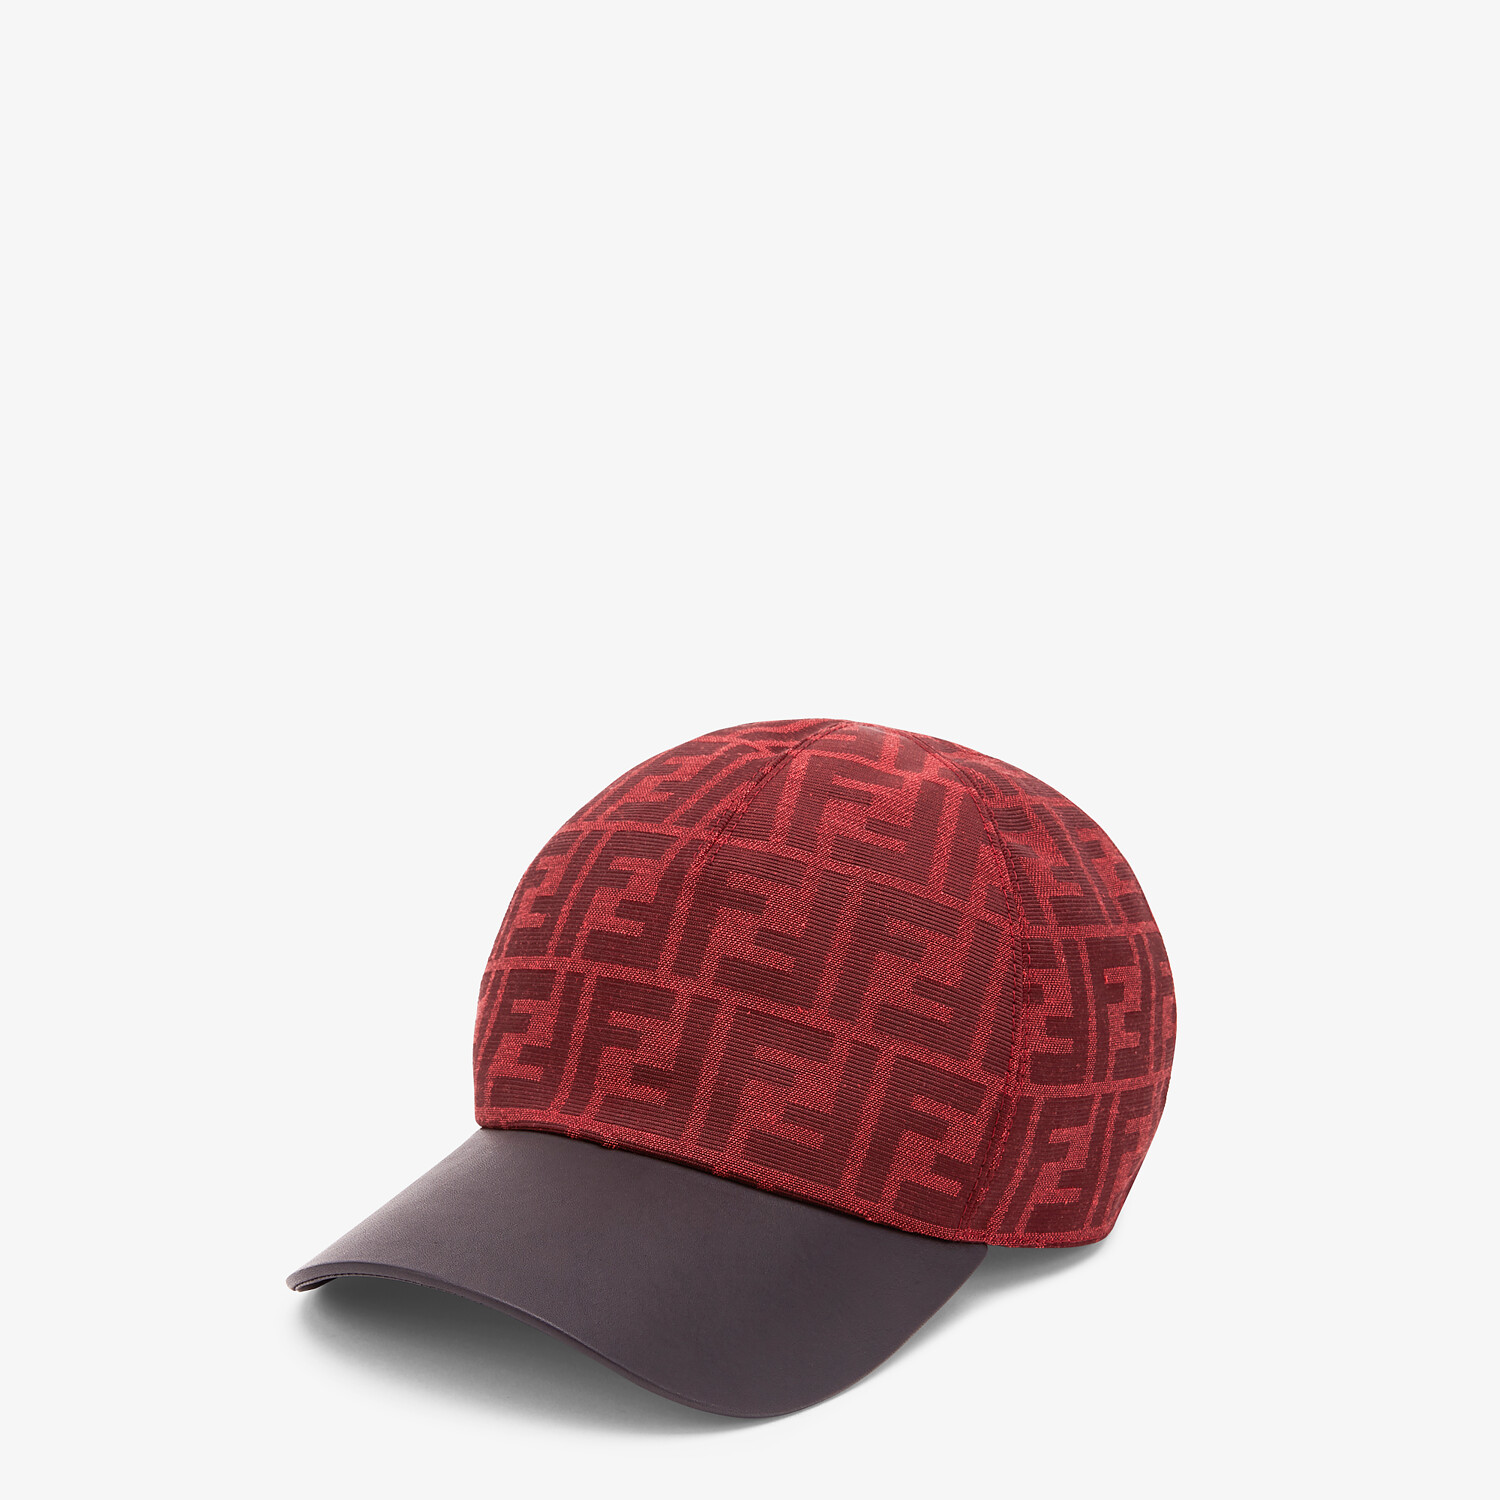 FENDI BASEBALL CAP - Baseball cap from the Lunar New Year Limited Capsule Collection - view 1 detail